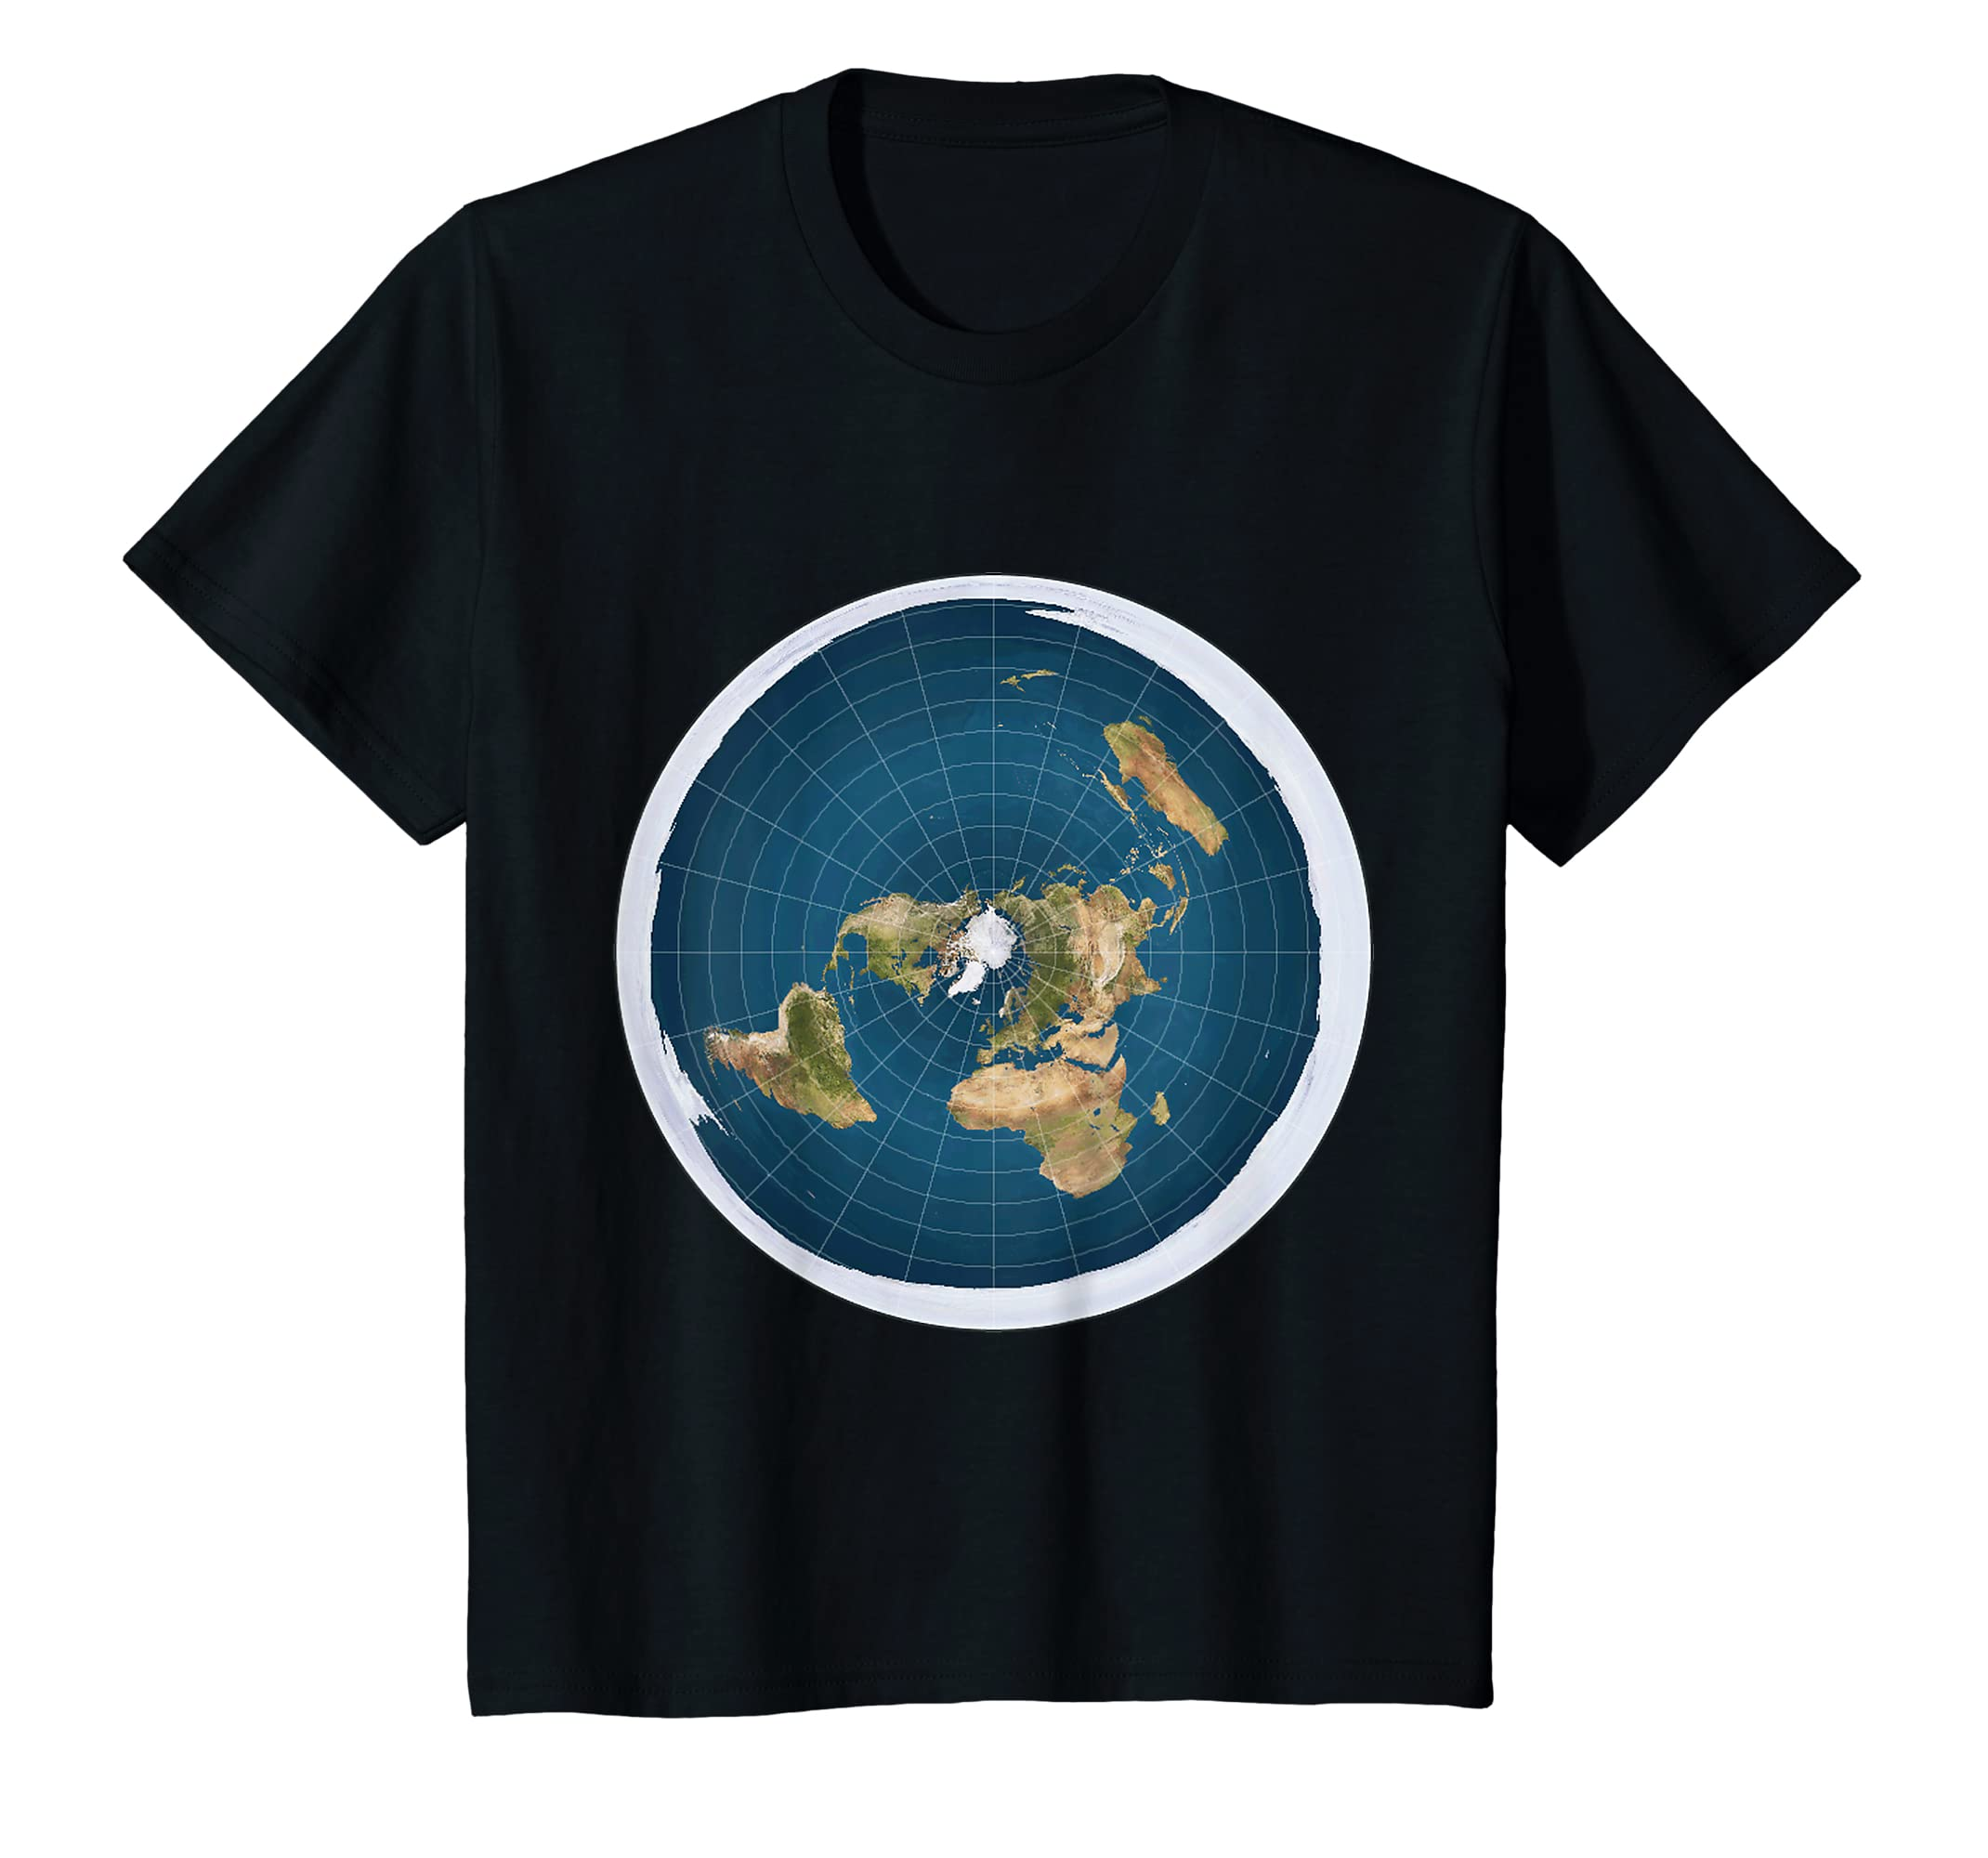 c182ea22e89 Amazon.com  Flat Earth T-Shirt  Clothing